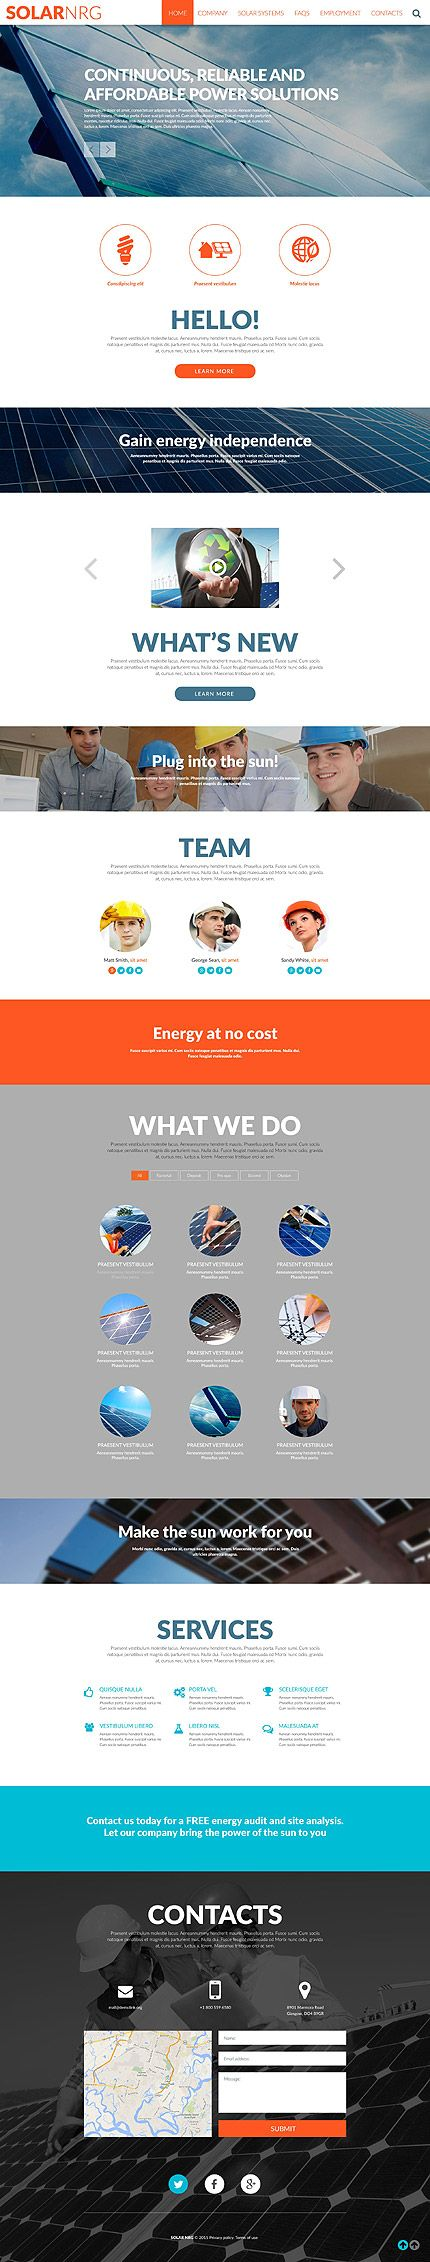 Most Popular Alternative Power website inspirations at your coffee break? Browse for more Responsive JavaScript Animated #templates! // Regular price: $69 // Sources available: .HTML,  .PSD #Most Popular #Alternative Power #Responsive JavaScript Animated